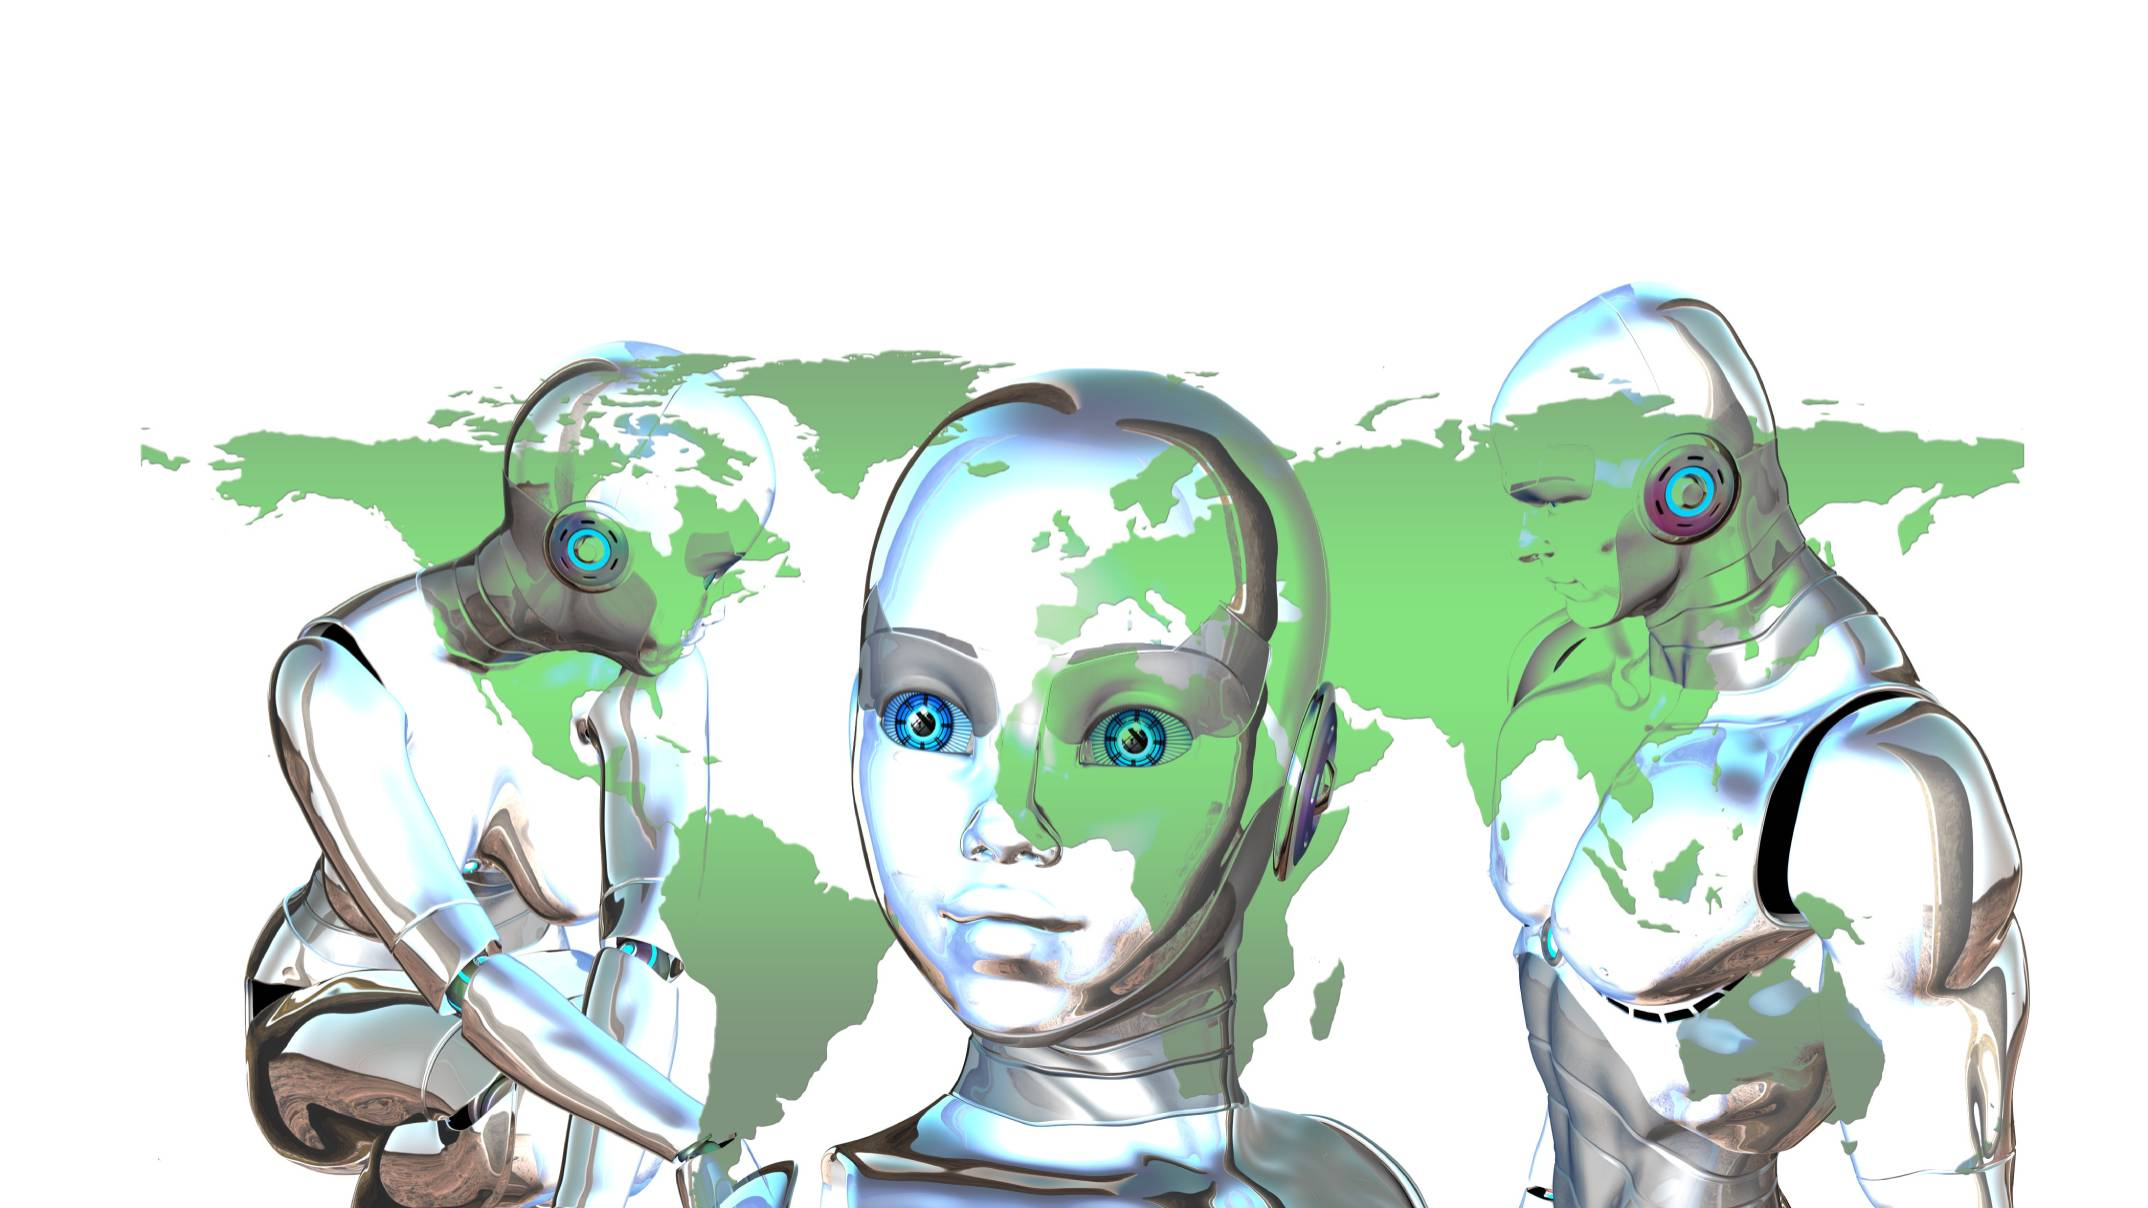 Can Machines be Empowered to Comprehend Human Emotions